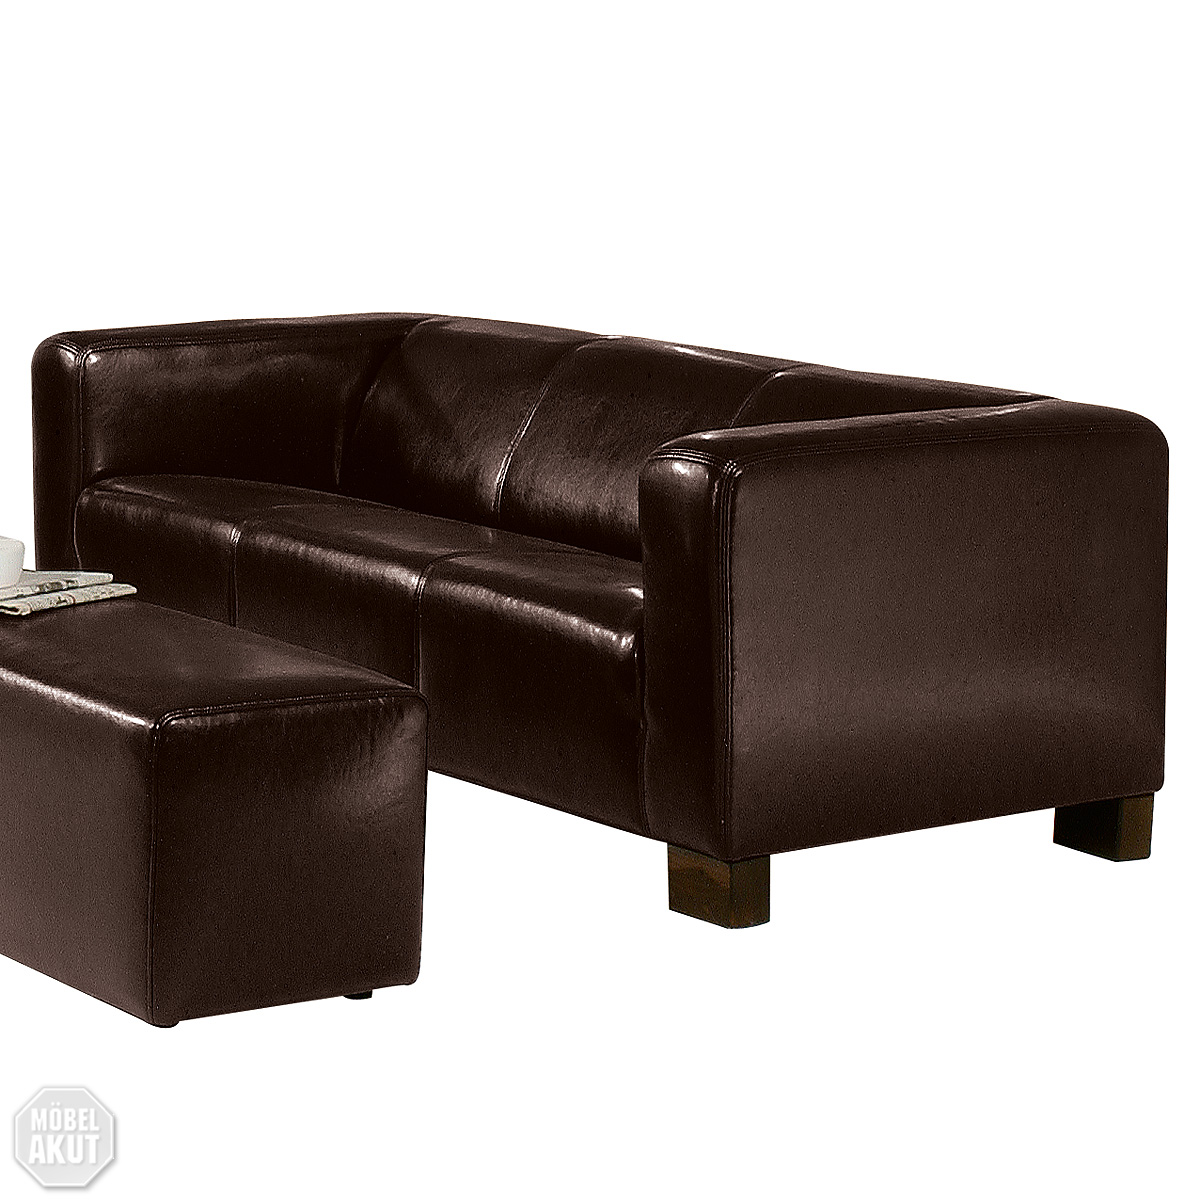 3er sofa vector leder farbe braun neu ovp ebay. Black Bedroom Furniture Sets. Home Design Ideas